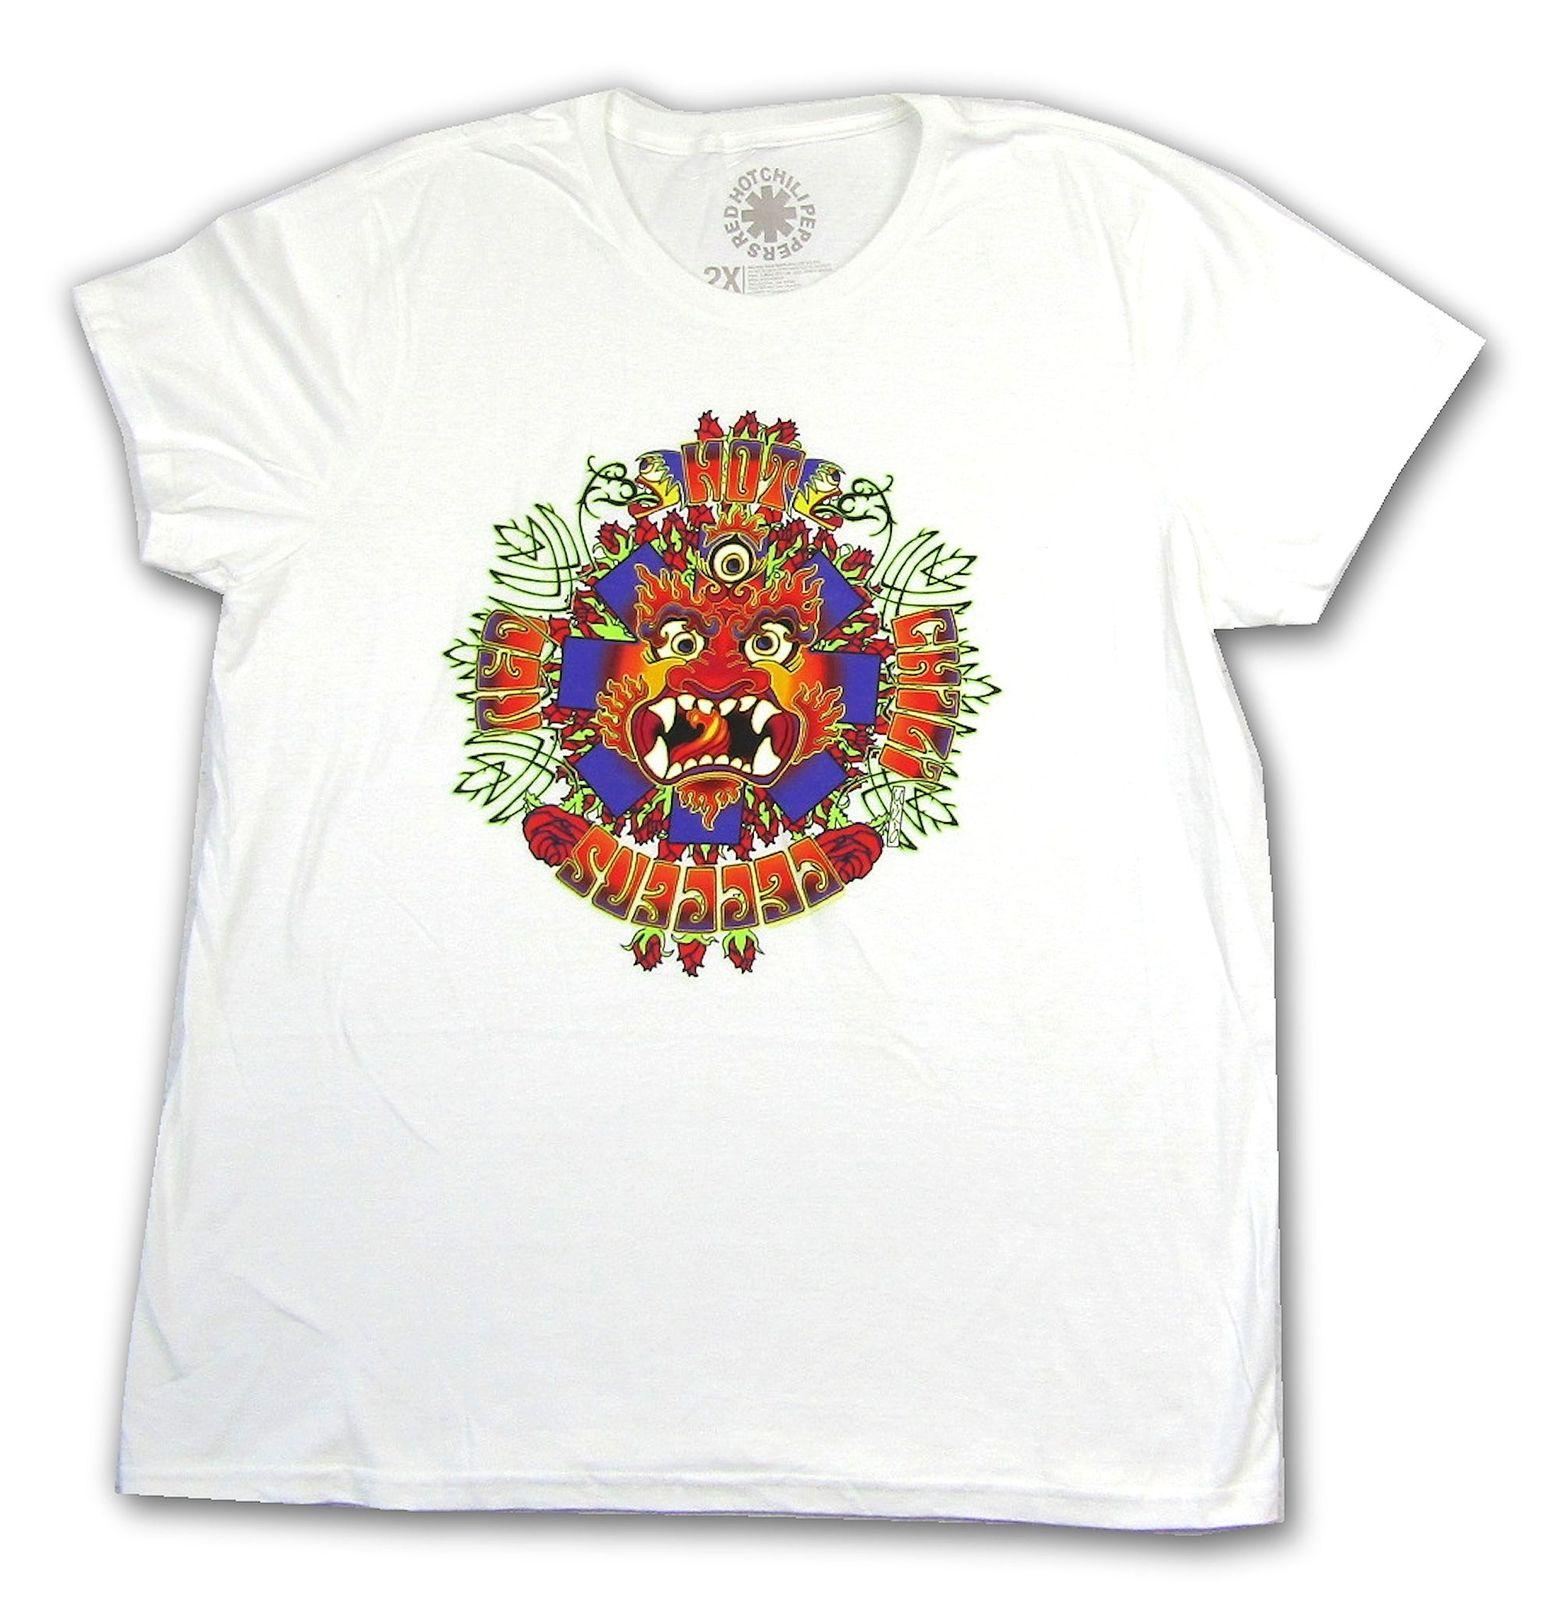 899e372f Red Hot Chili Peppers Dragon Asterisk White T Shirt New Official Band Merch  T-Shirt Novelty Cool Tops Men'S Short Sleeve T shirt